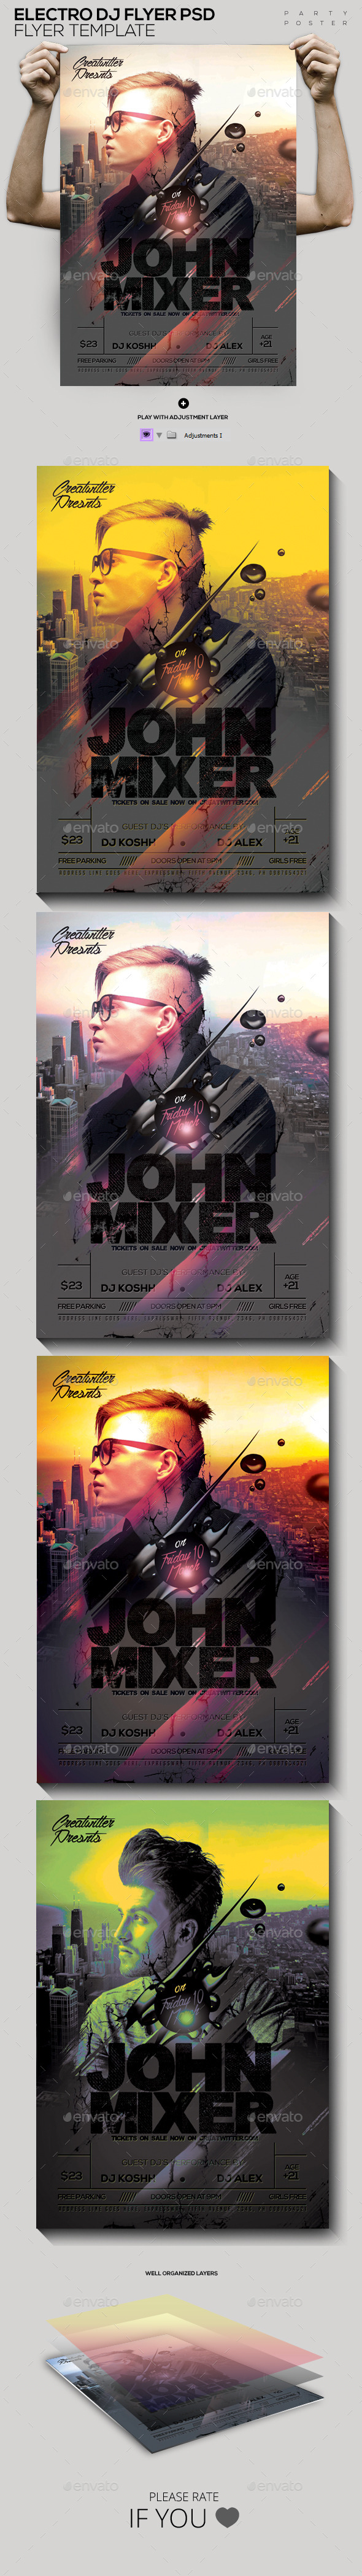 Electro Guest DJ Flyer PSD - Clubs & Parties Events